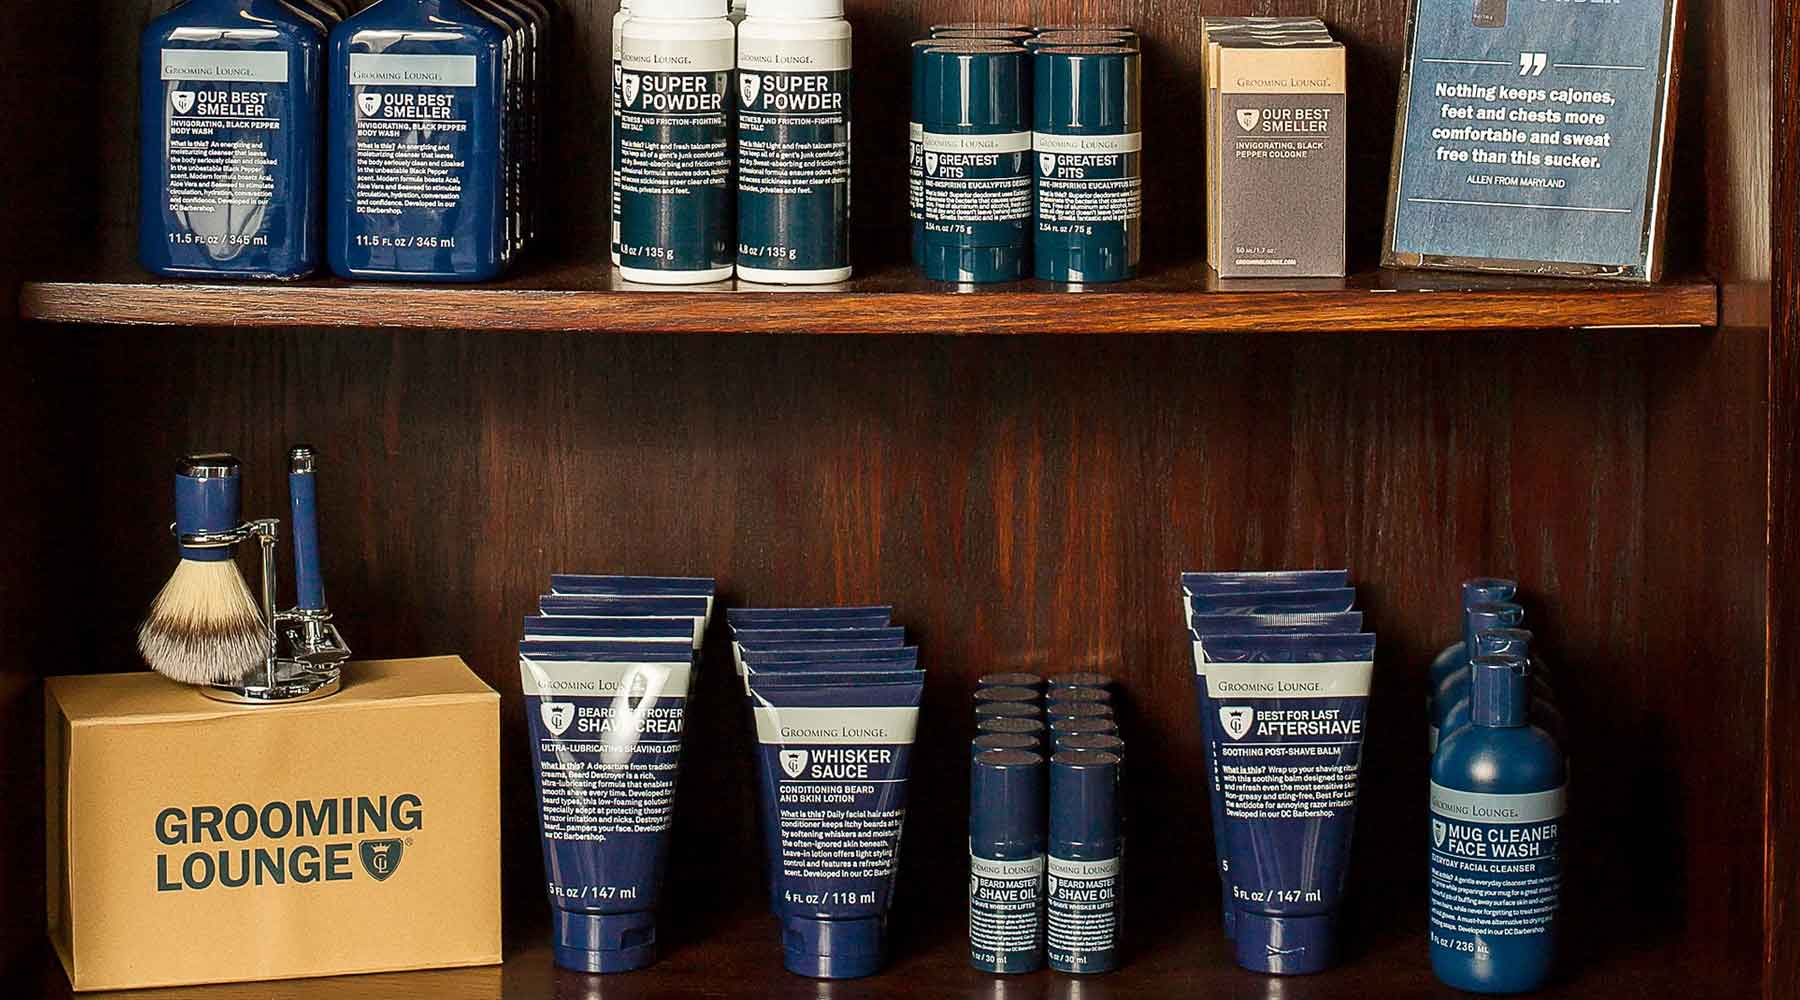 Grooming Lounge Shaving & Beard Care